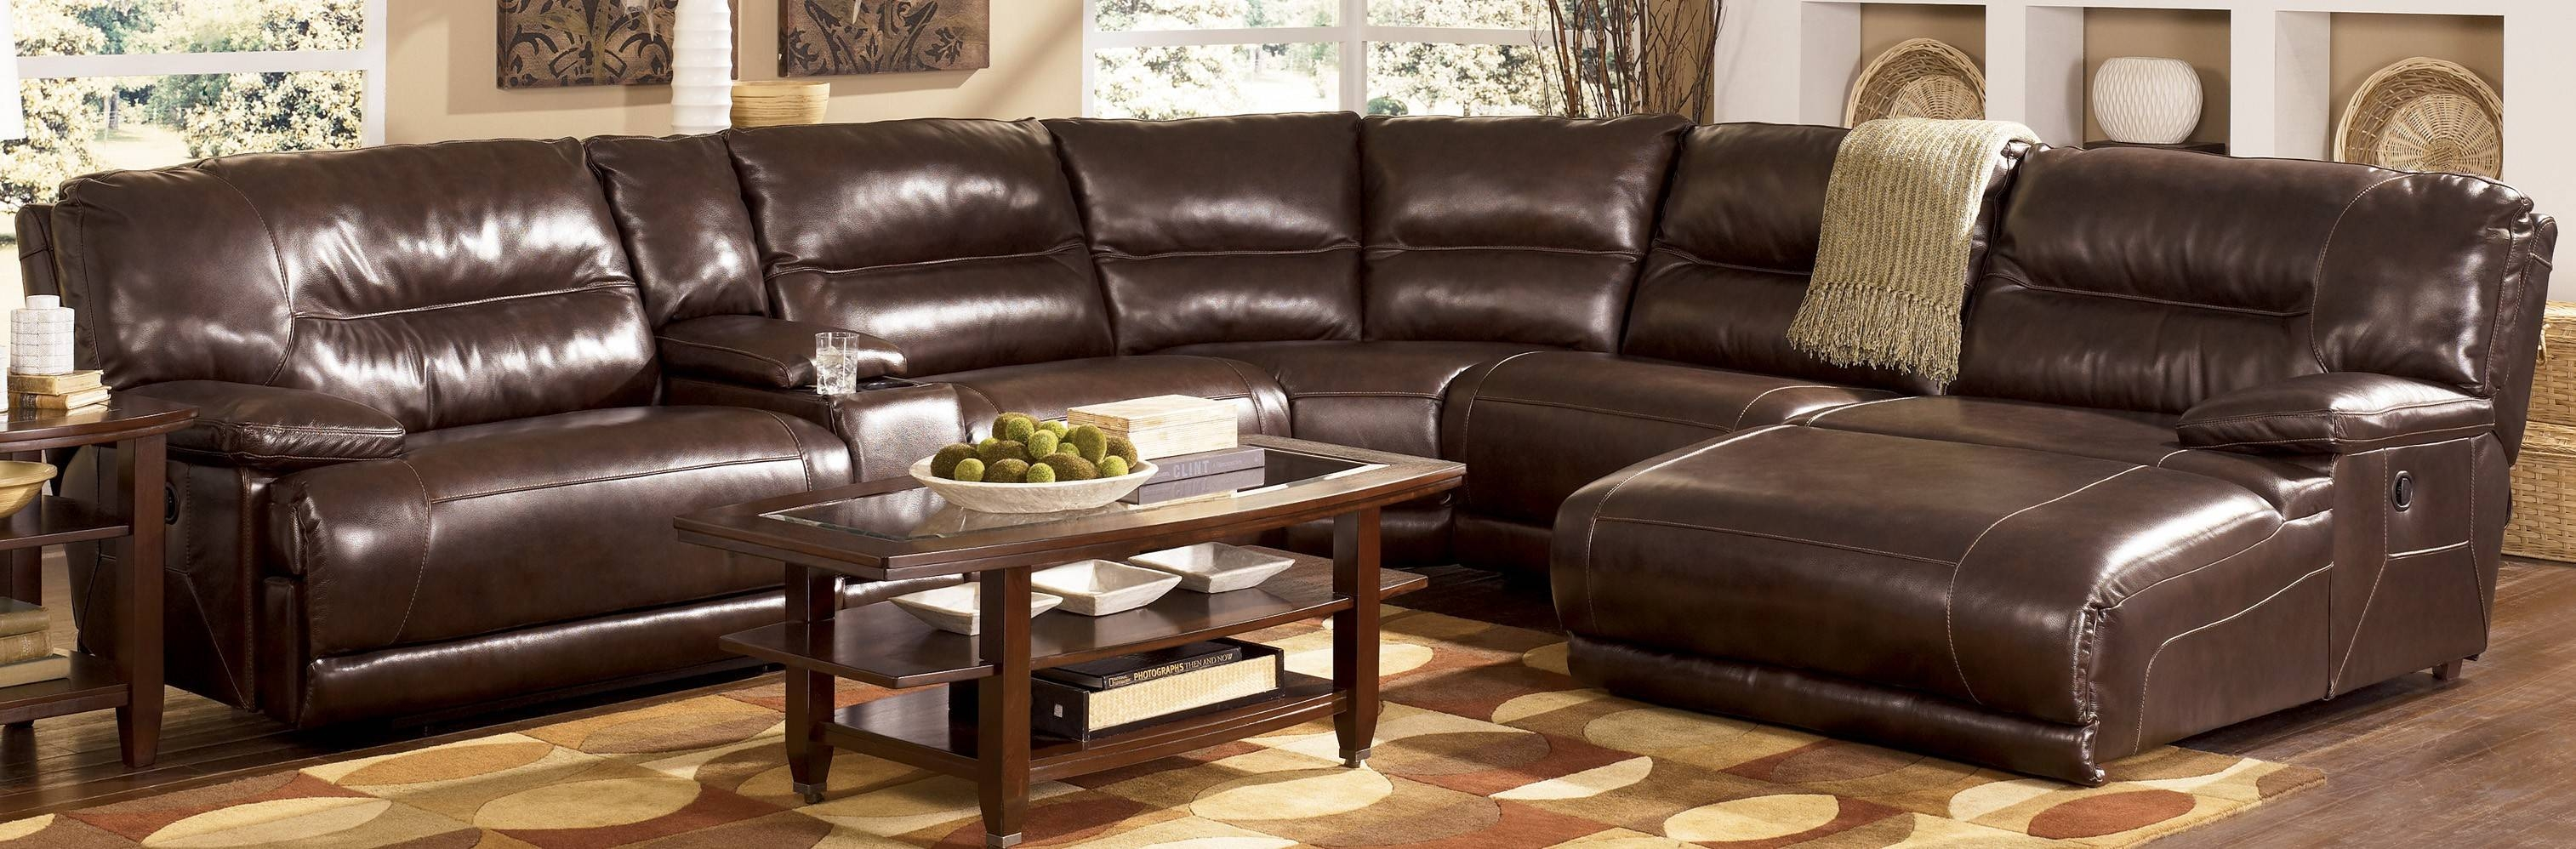 Inspiring Leather Sectional Sofas With Recliners And Chaise 23 For for Down Filled Sectional Sofas (Image 12 of 30)